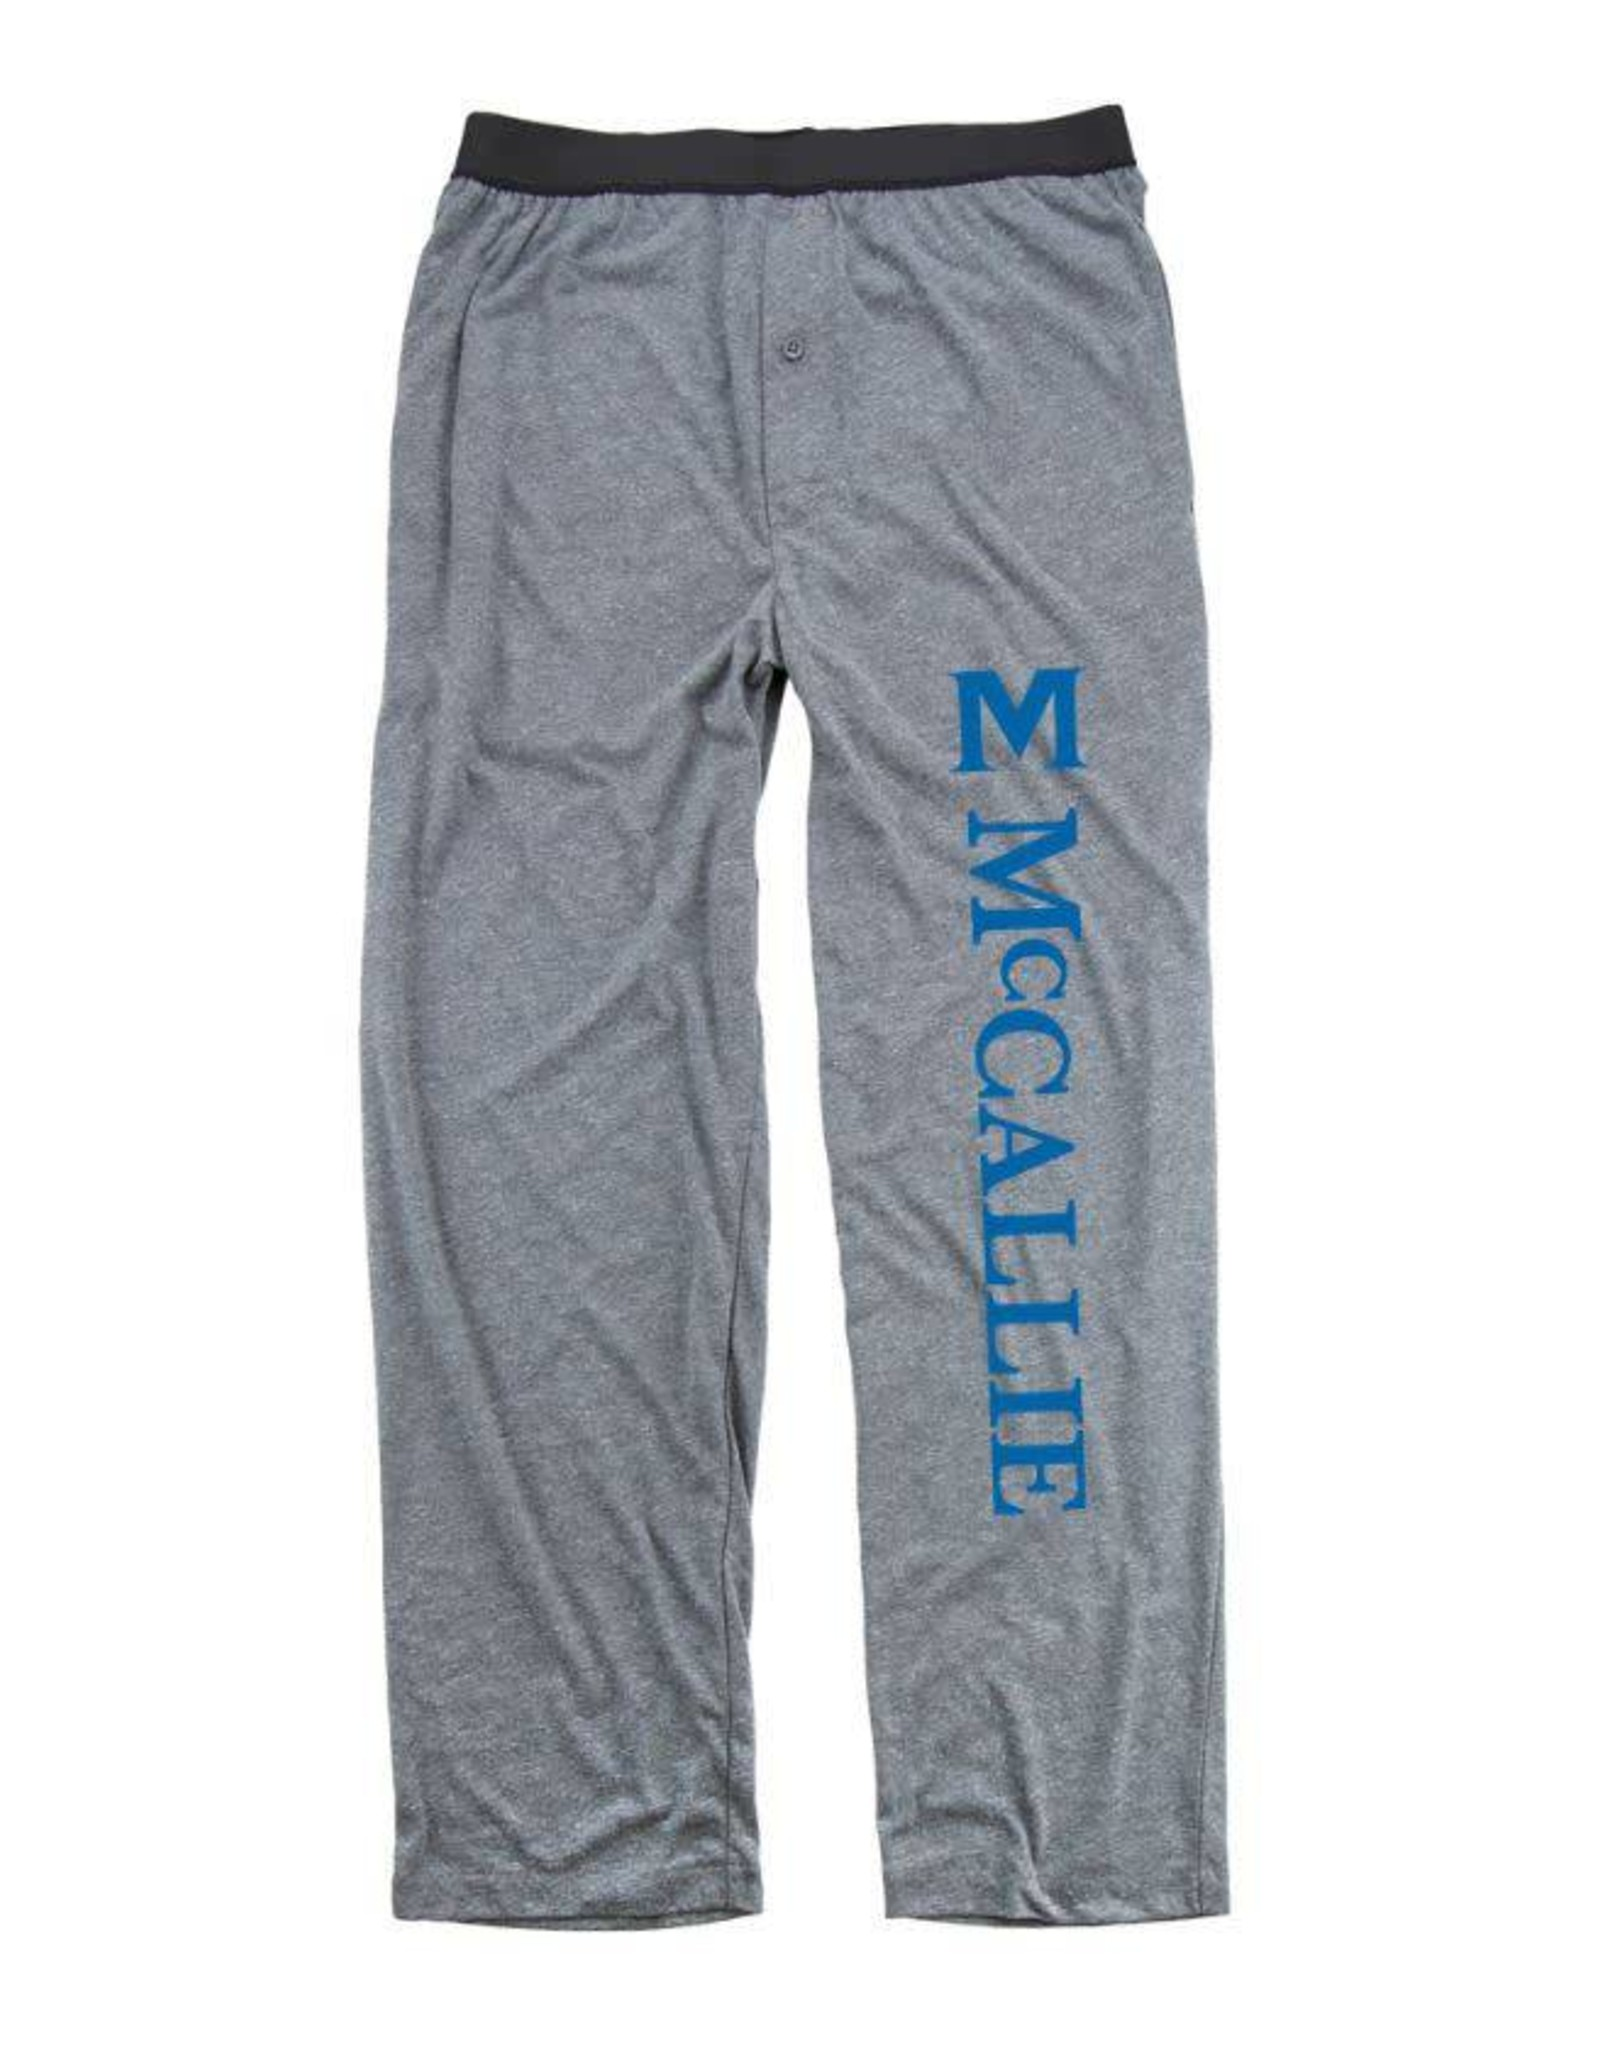 YOUTH LOUNGE PANTS